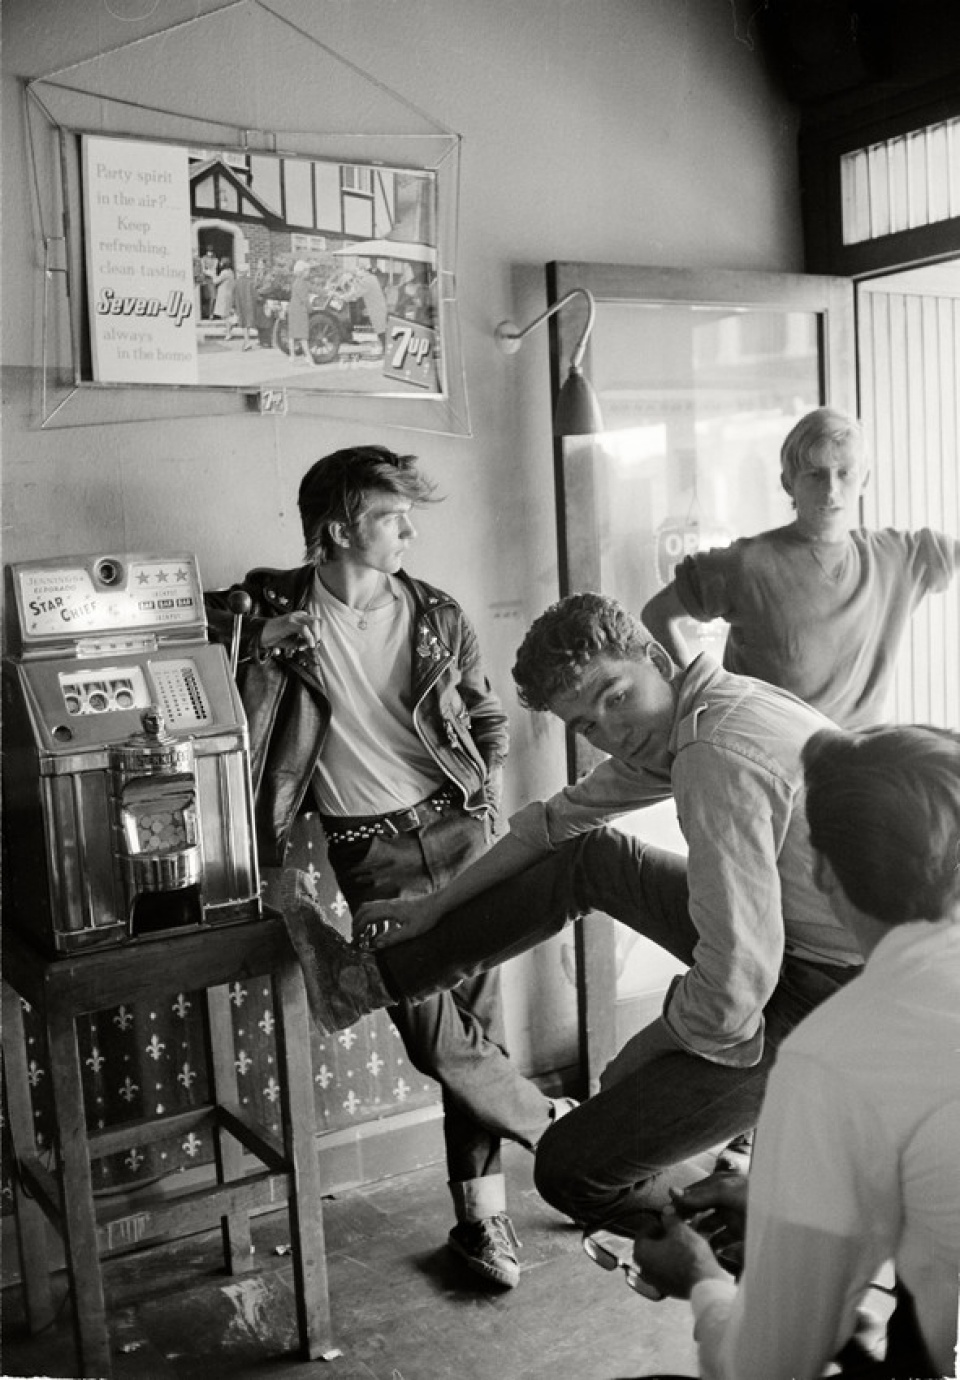 Max Scheler. 'Members of a Motorcycle Club hanging out at a pub in the London Suburbs, London, 1964